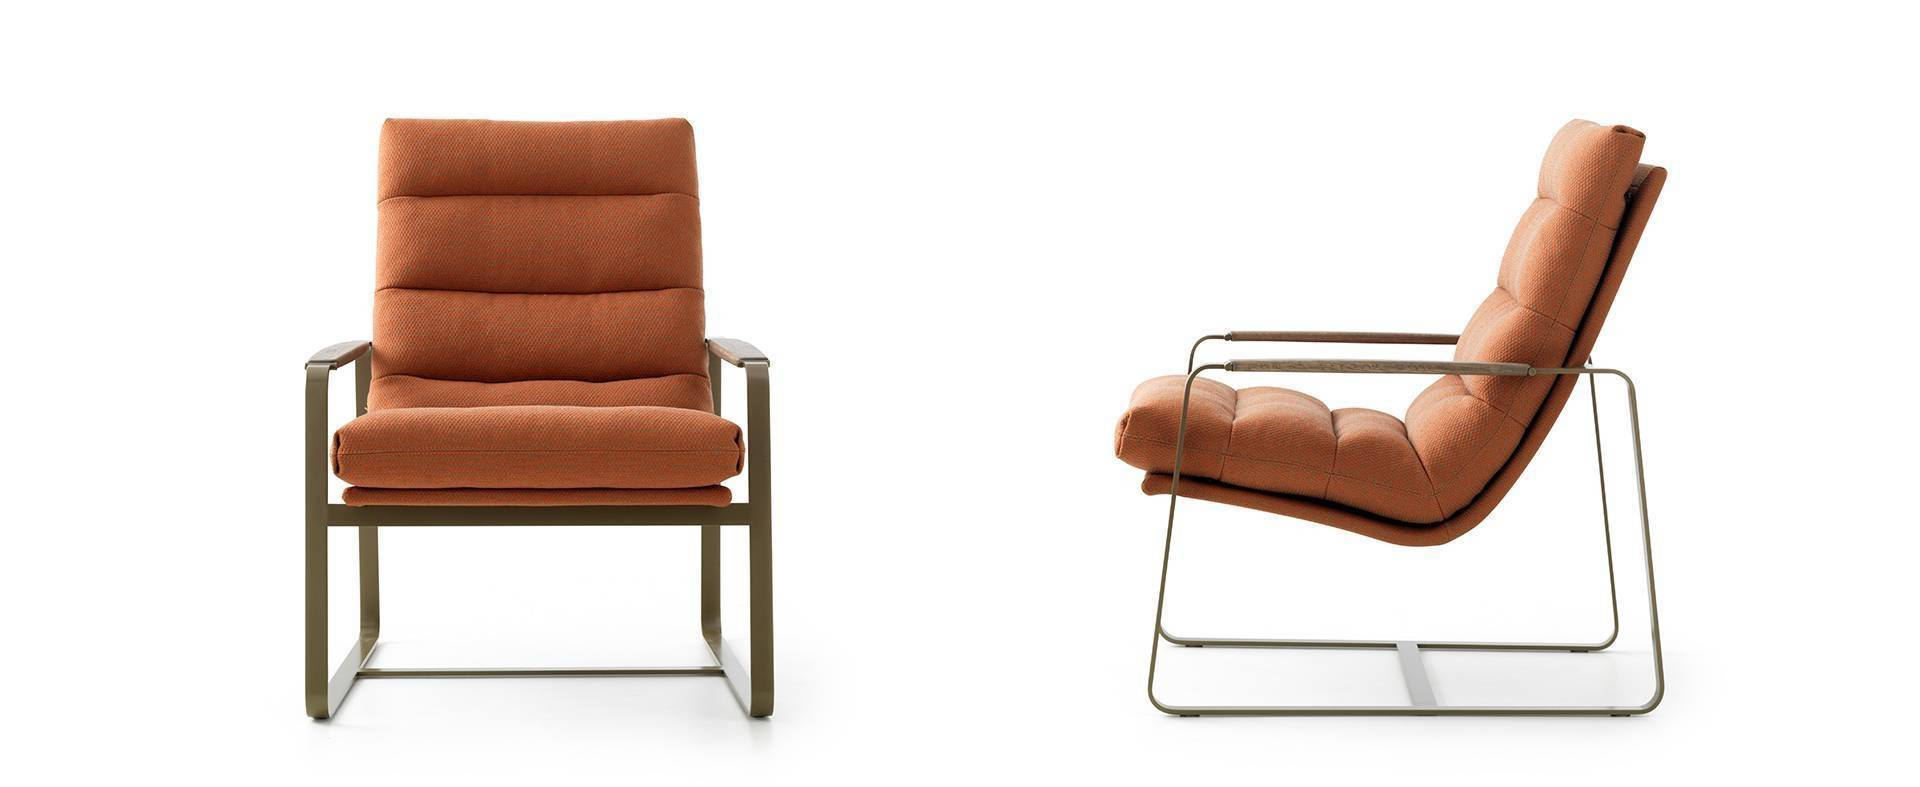 Design Armchair Indra By Leolux - Fauteuil designer